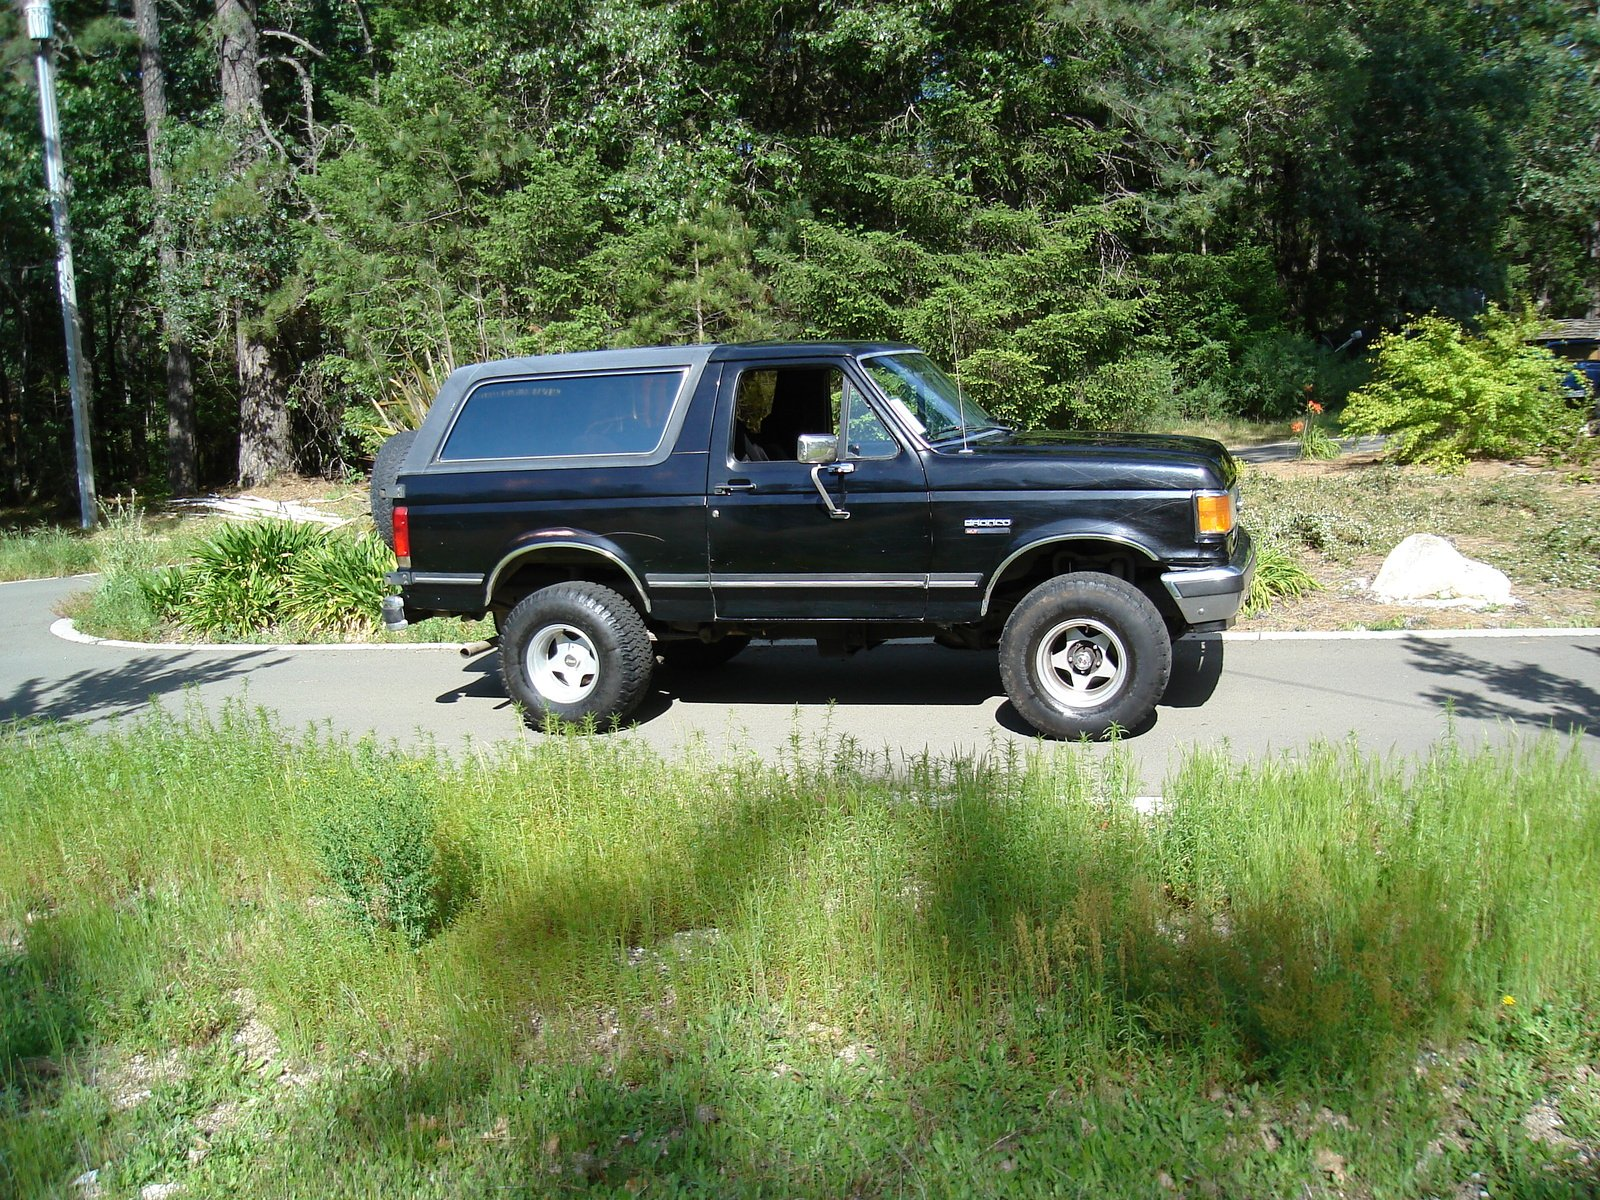 FORD BRONCO suv 4x4 truck wallpaper background 1600x1200